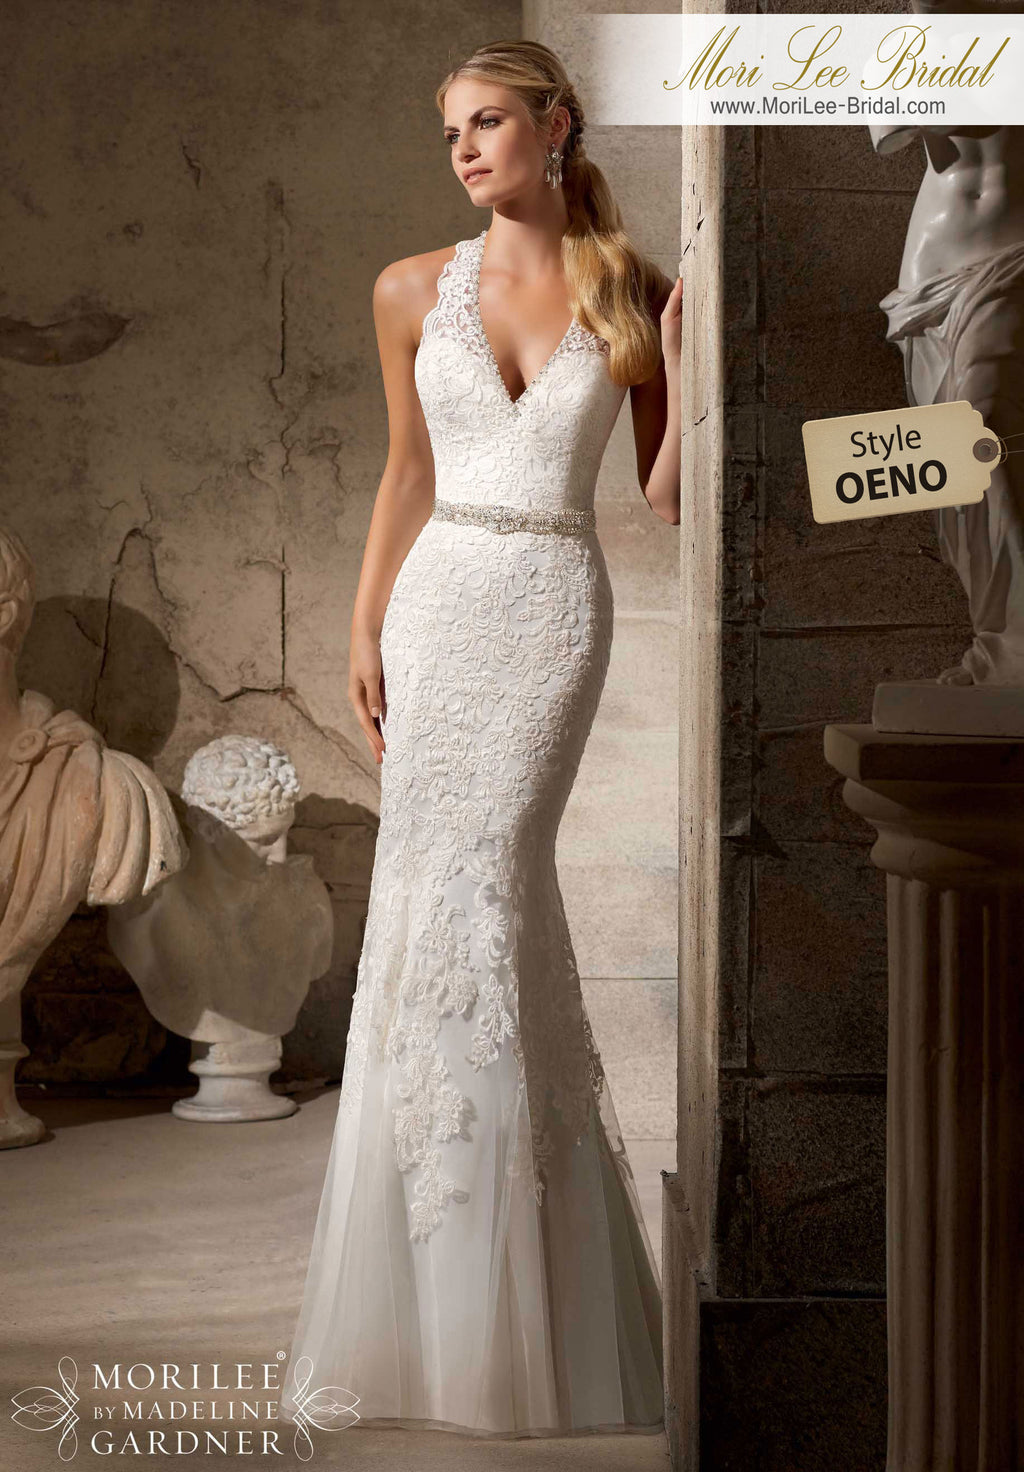 OENO* - Mori Lee Bridal